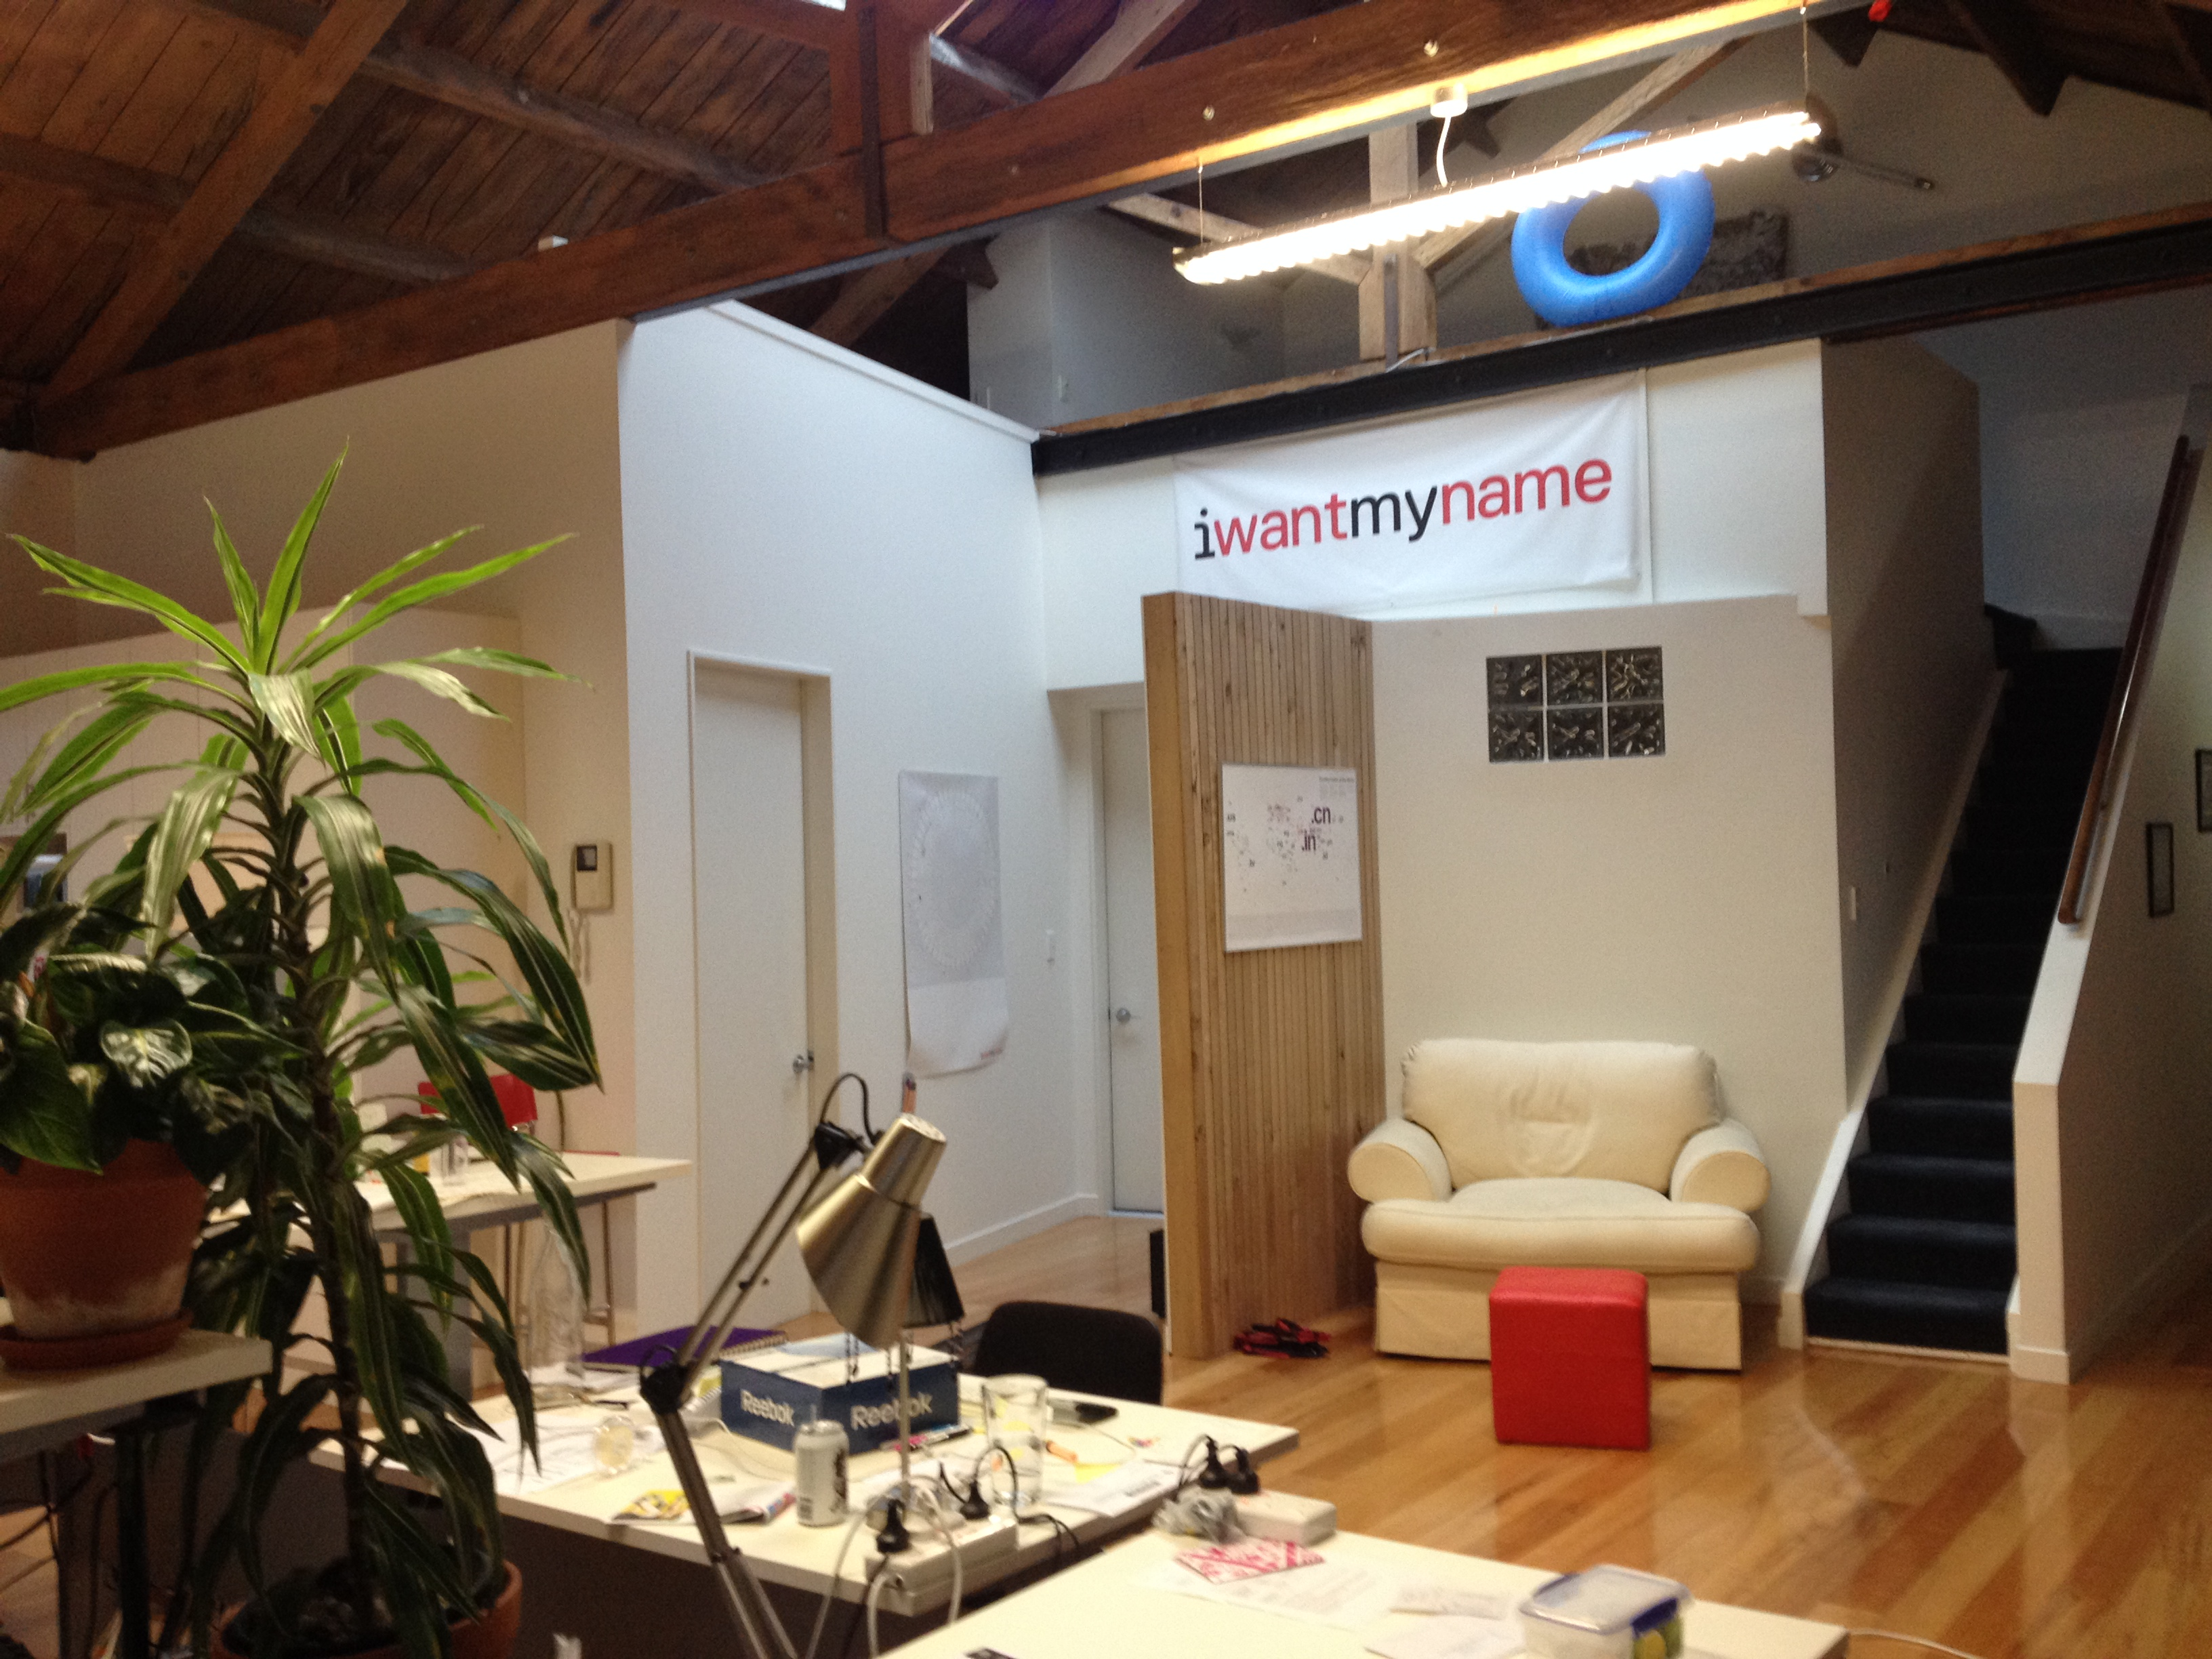 photo inside the former iwantmyname headquarters in Wellington, NZ